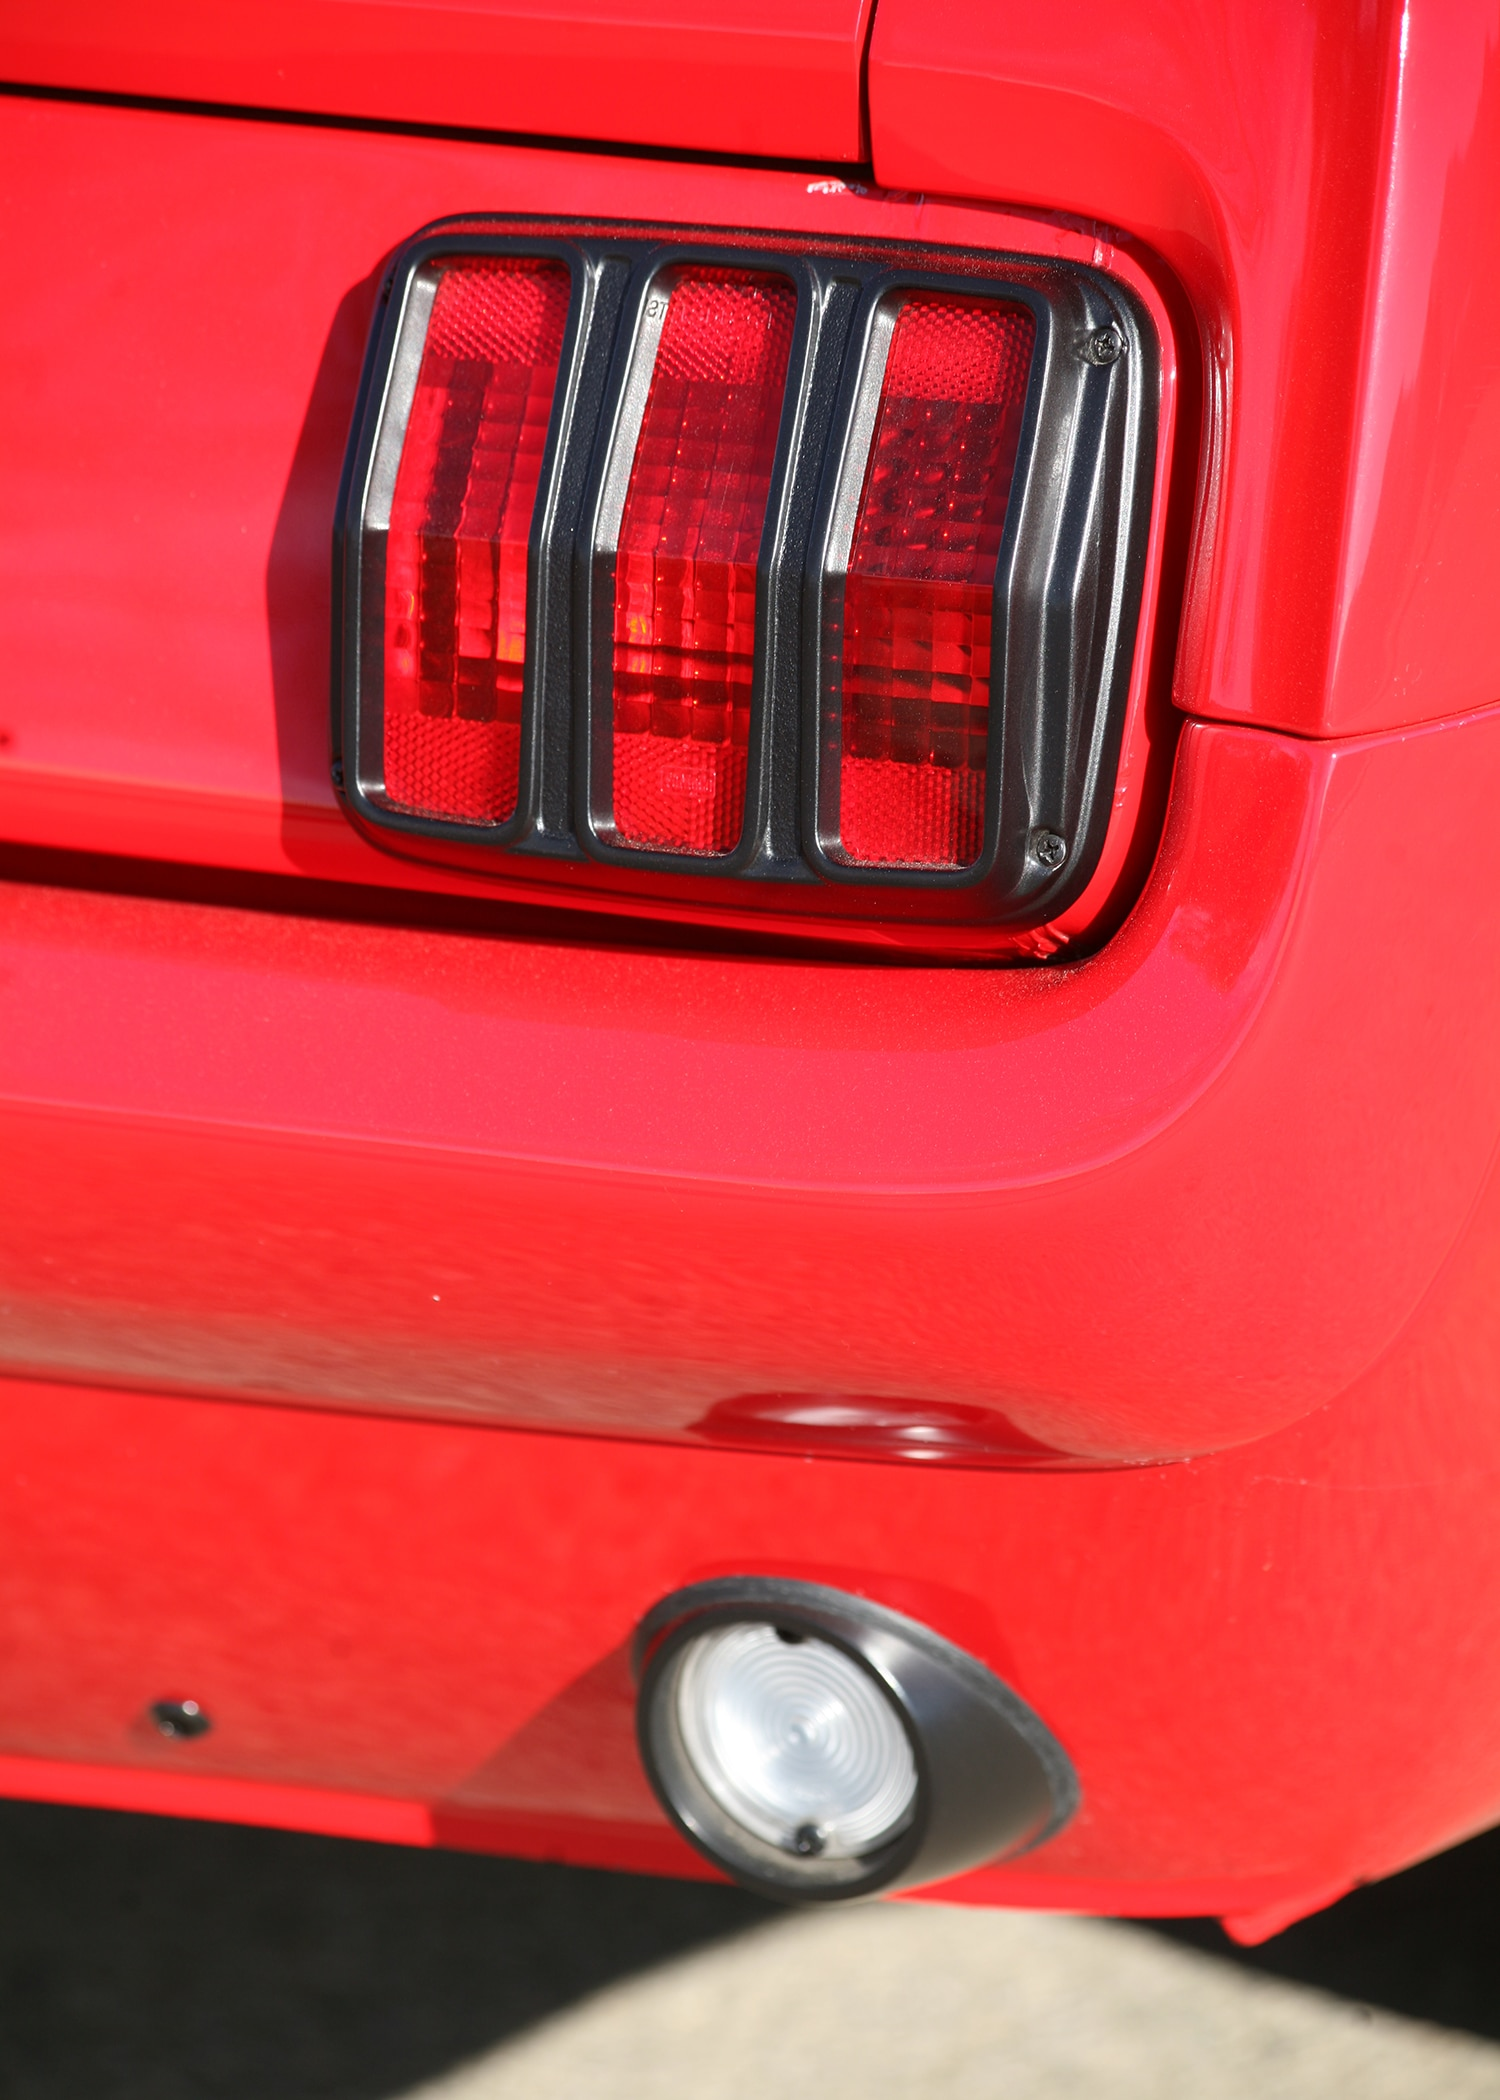 4 1966 Ford Mustang Taillight